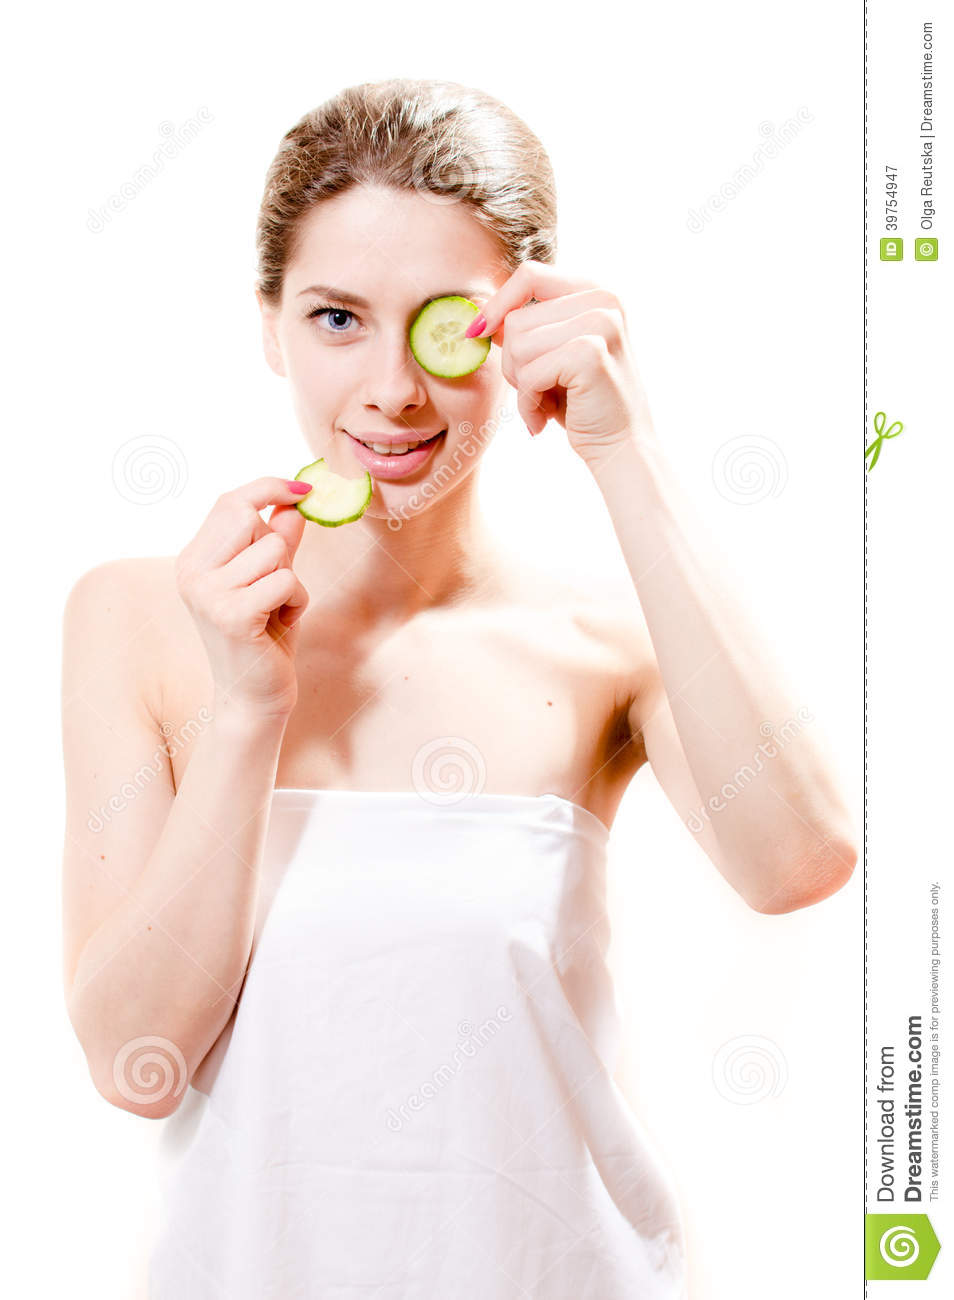 Spa young beautiful woman attractive girl standing with slices of cucumber in the hands one piece on eye isolated